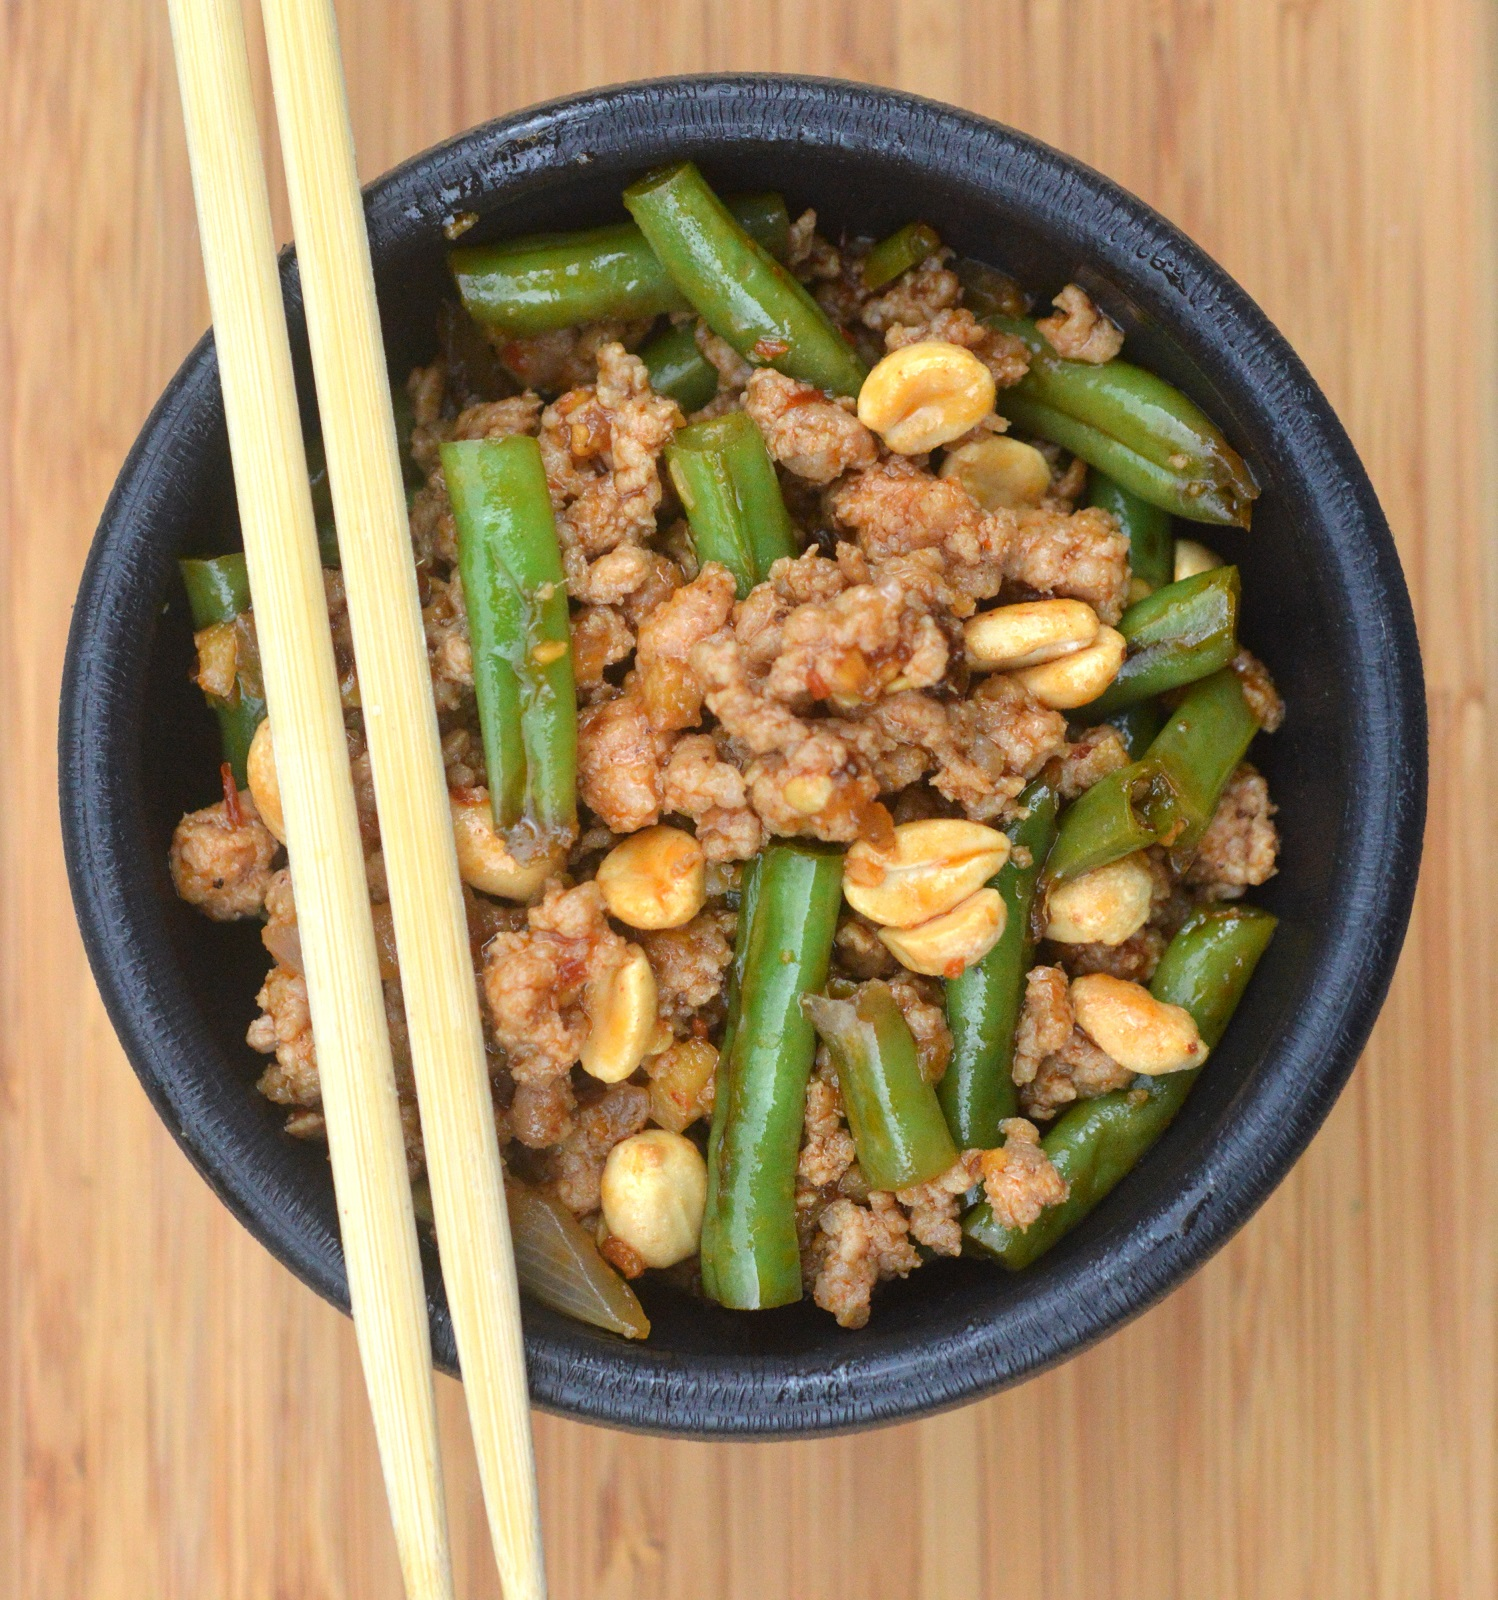 Ground Meat and String Bean Asian Stir Fry